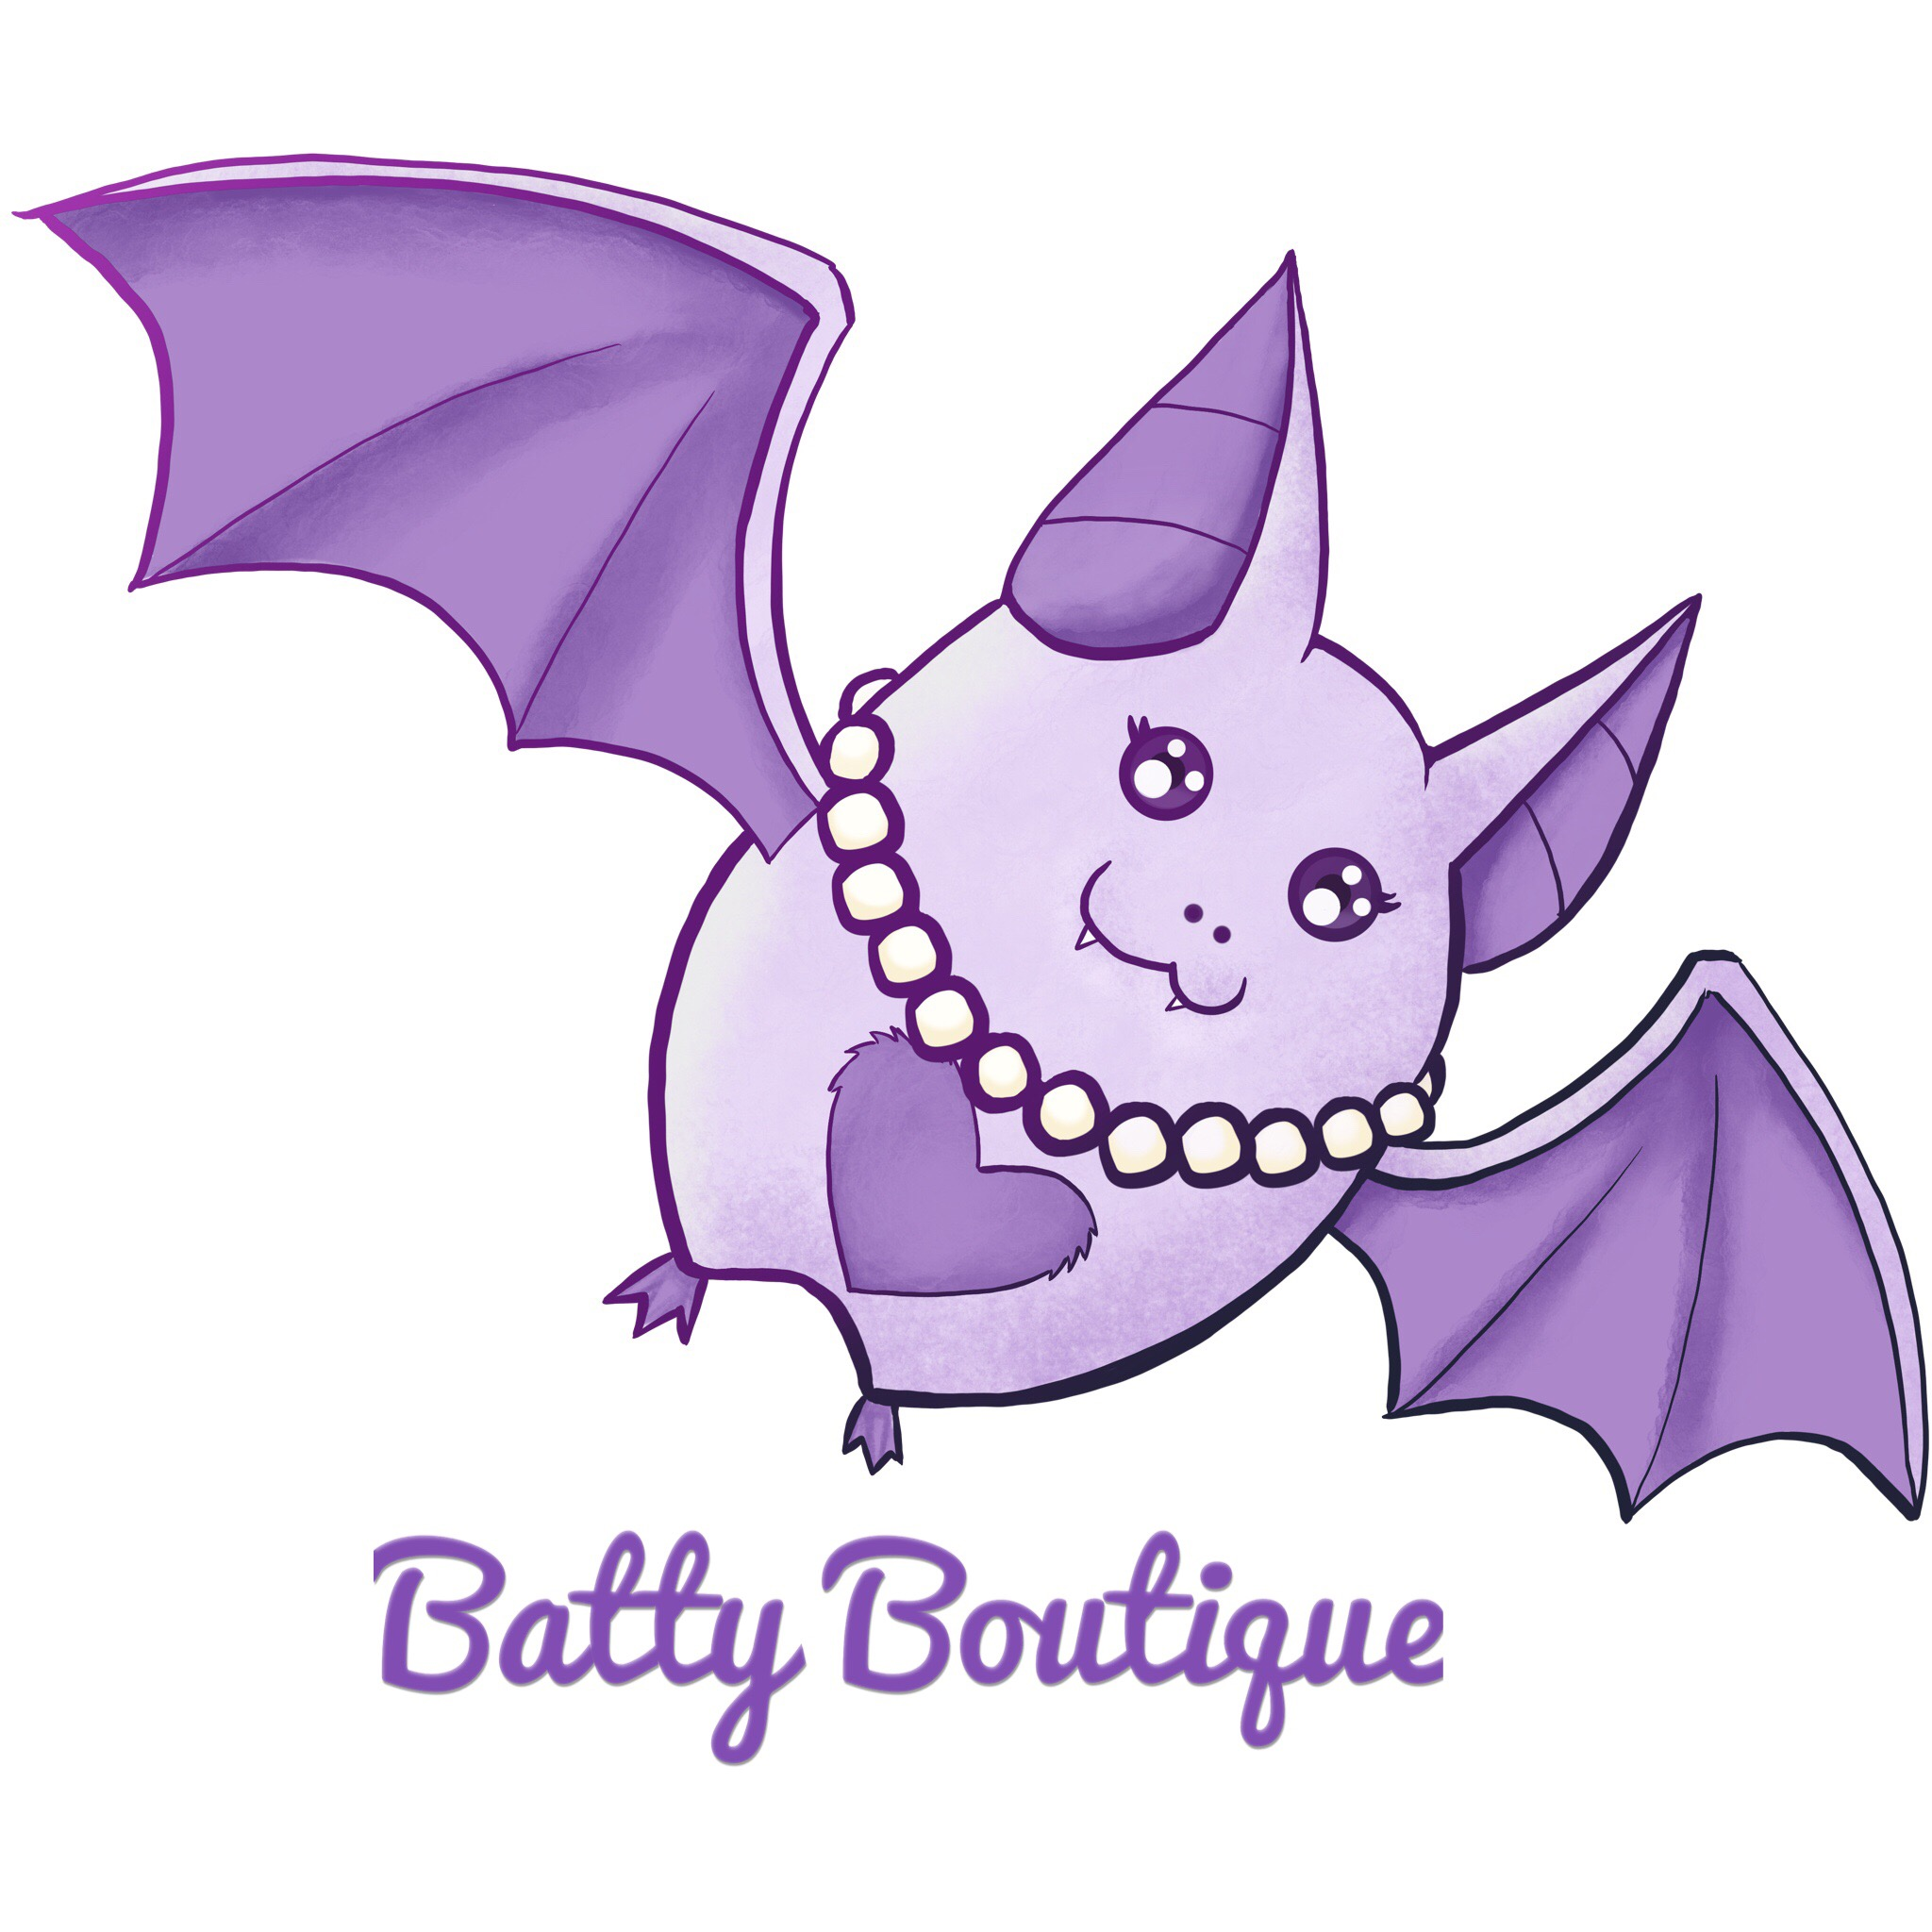 BattyXBoutique - Jewelry and Accessories